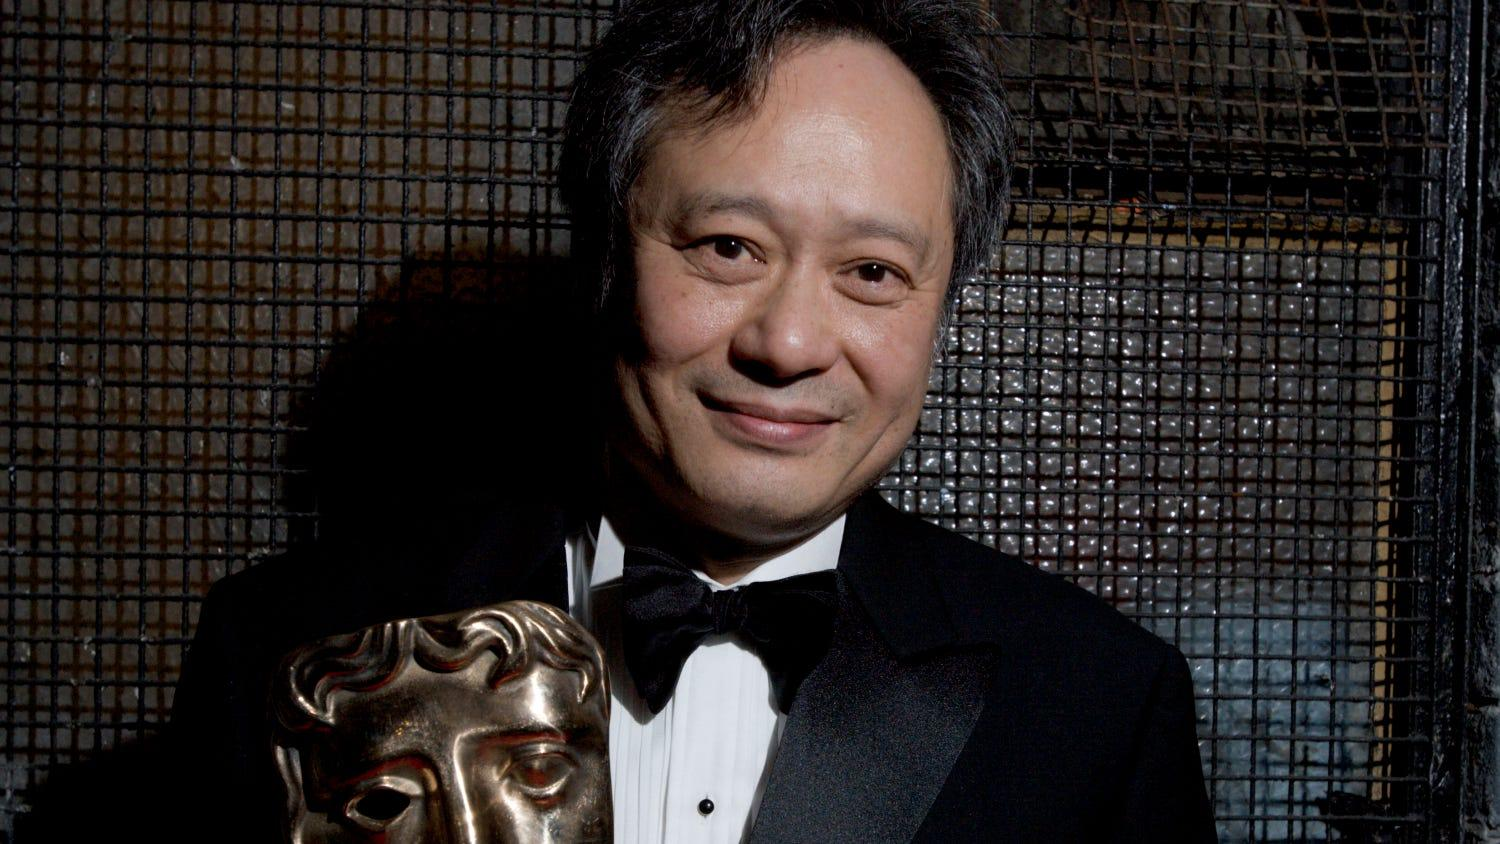 Bafta Fellowship the latest honour of director Ang Lee's career